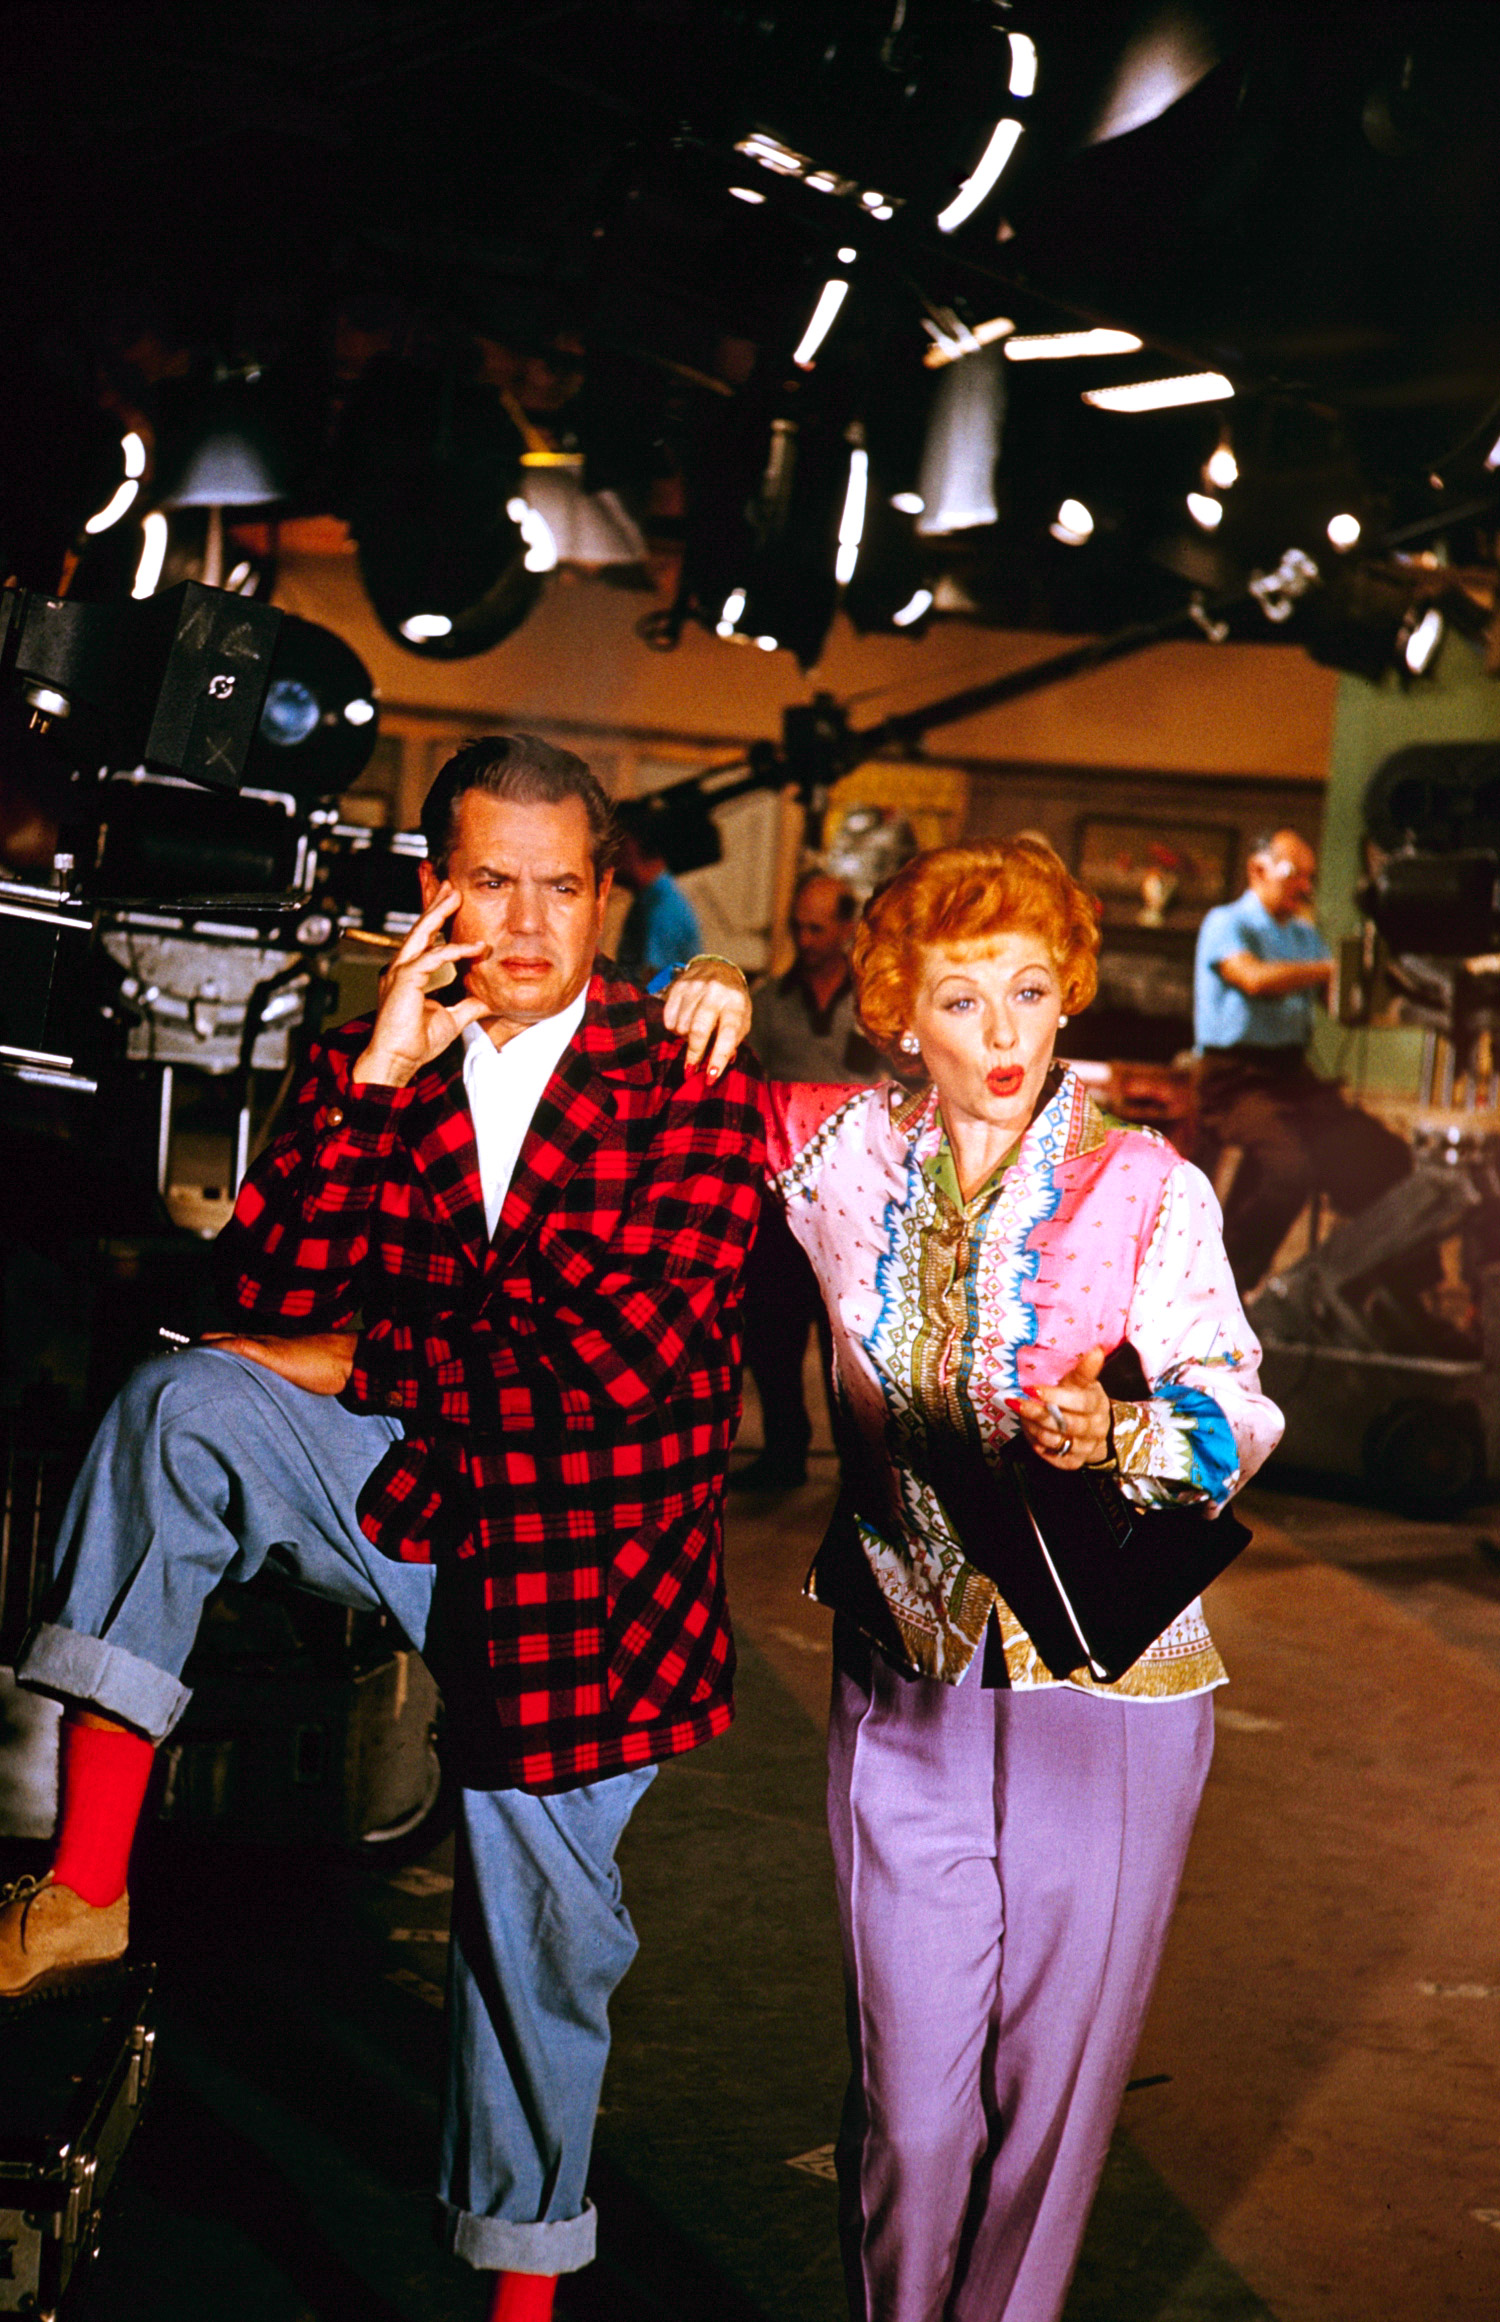 Red curls and spunk are the key ingredients to a Lucille Ball and Desi Arnaz couple costume (1958).